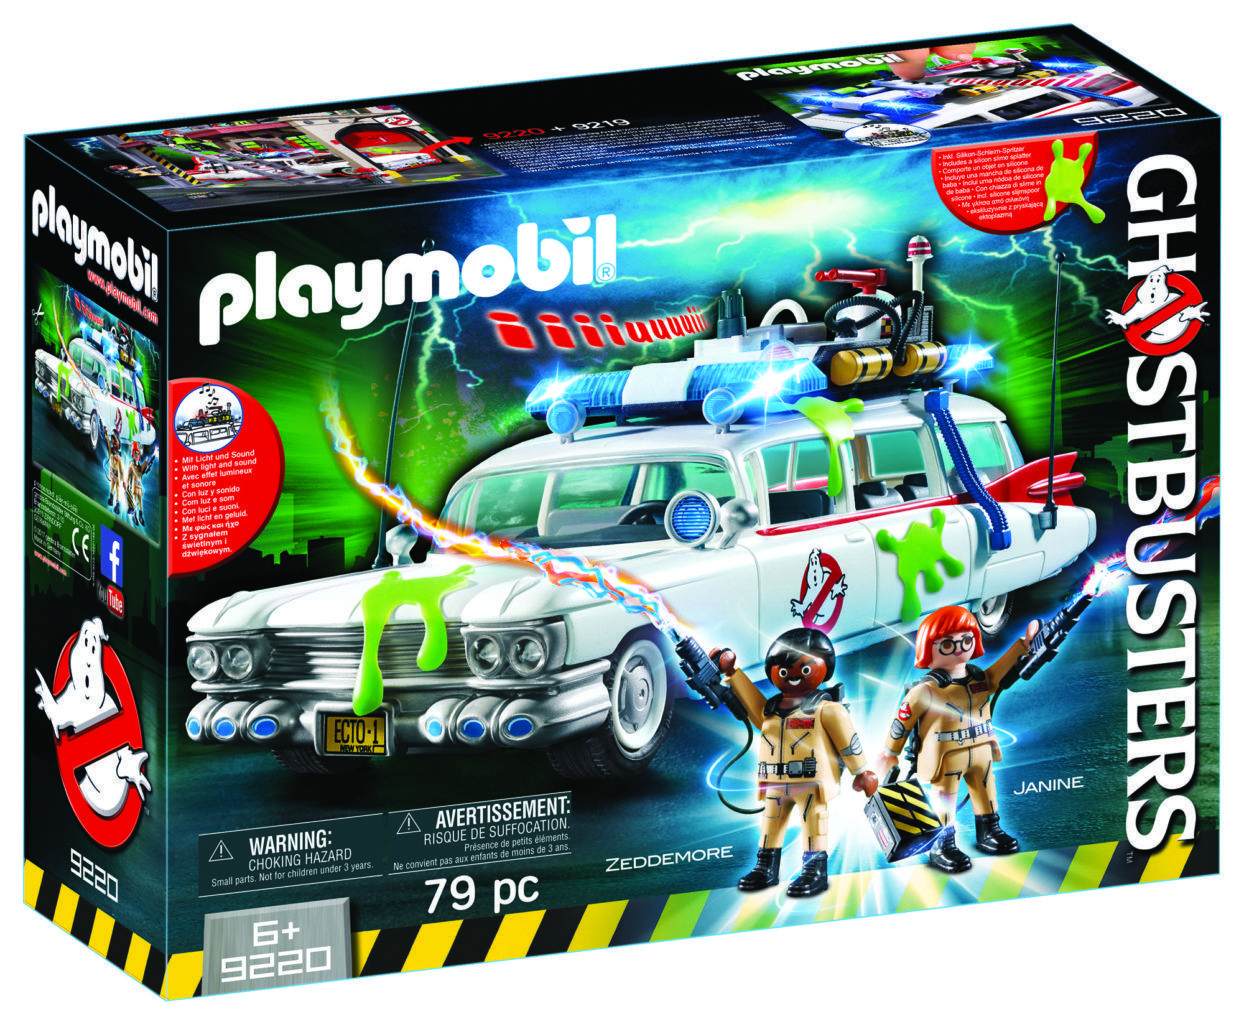 Playmobil Ghostbusters Ect copy 1